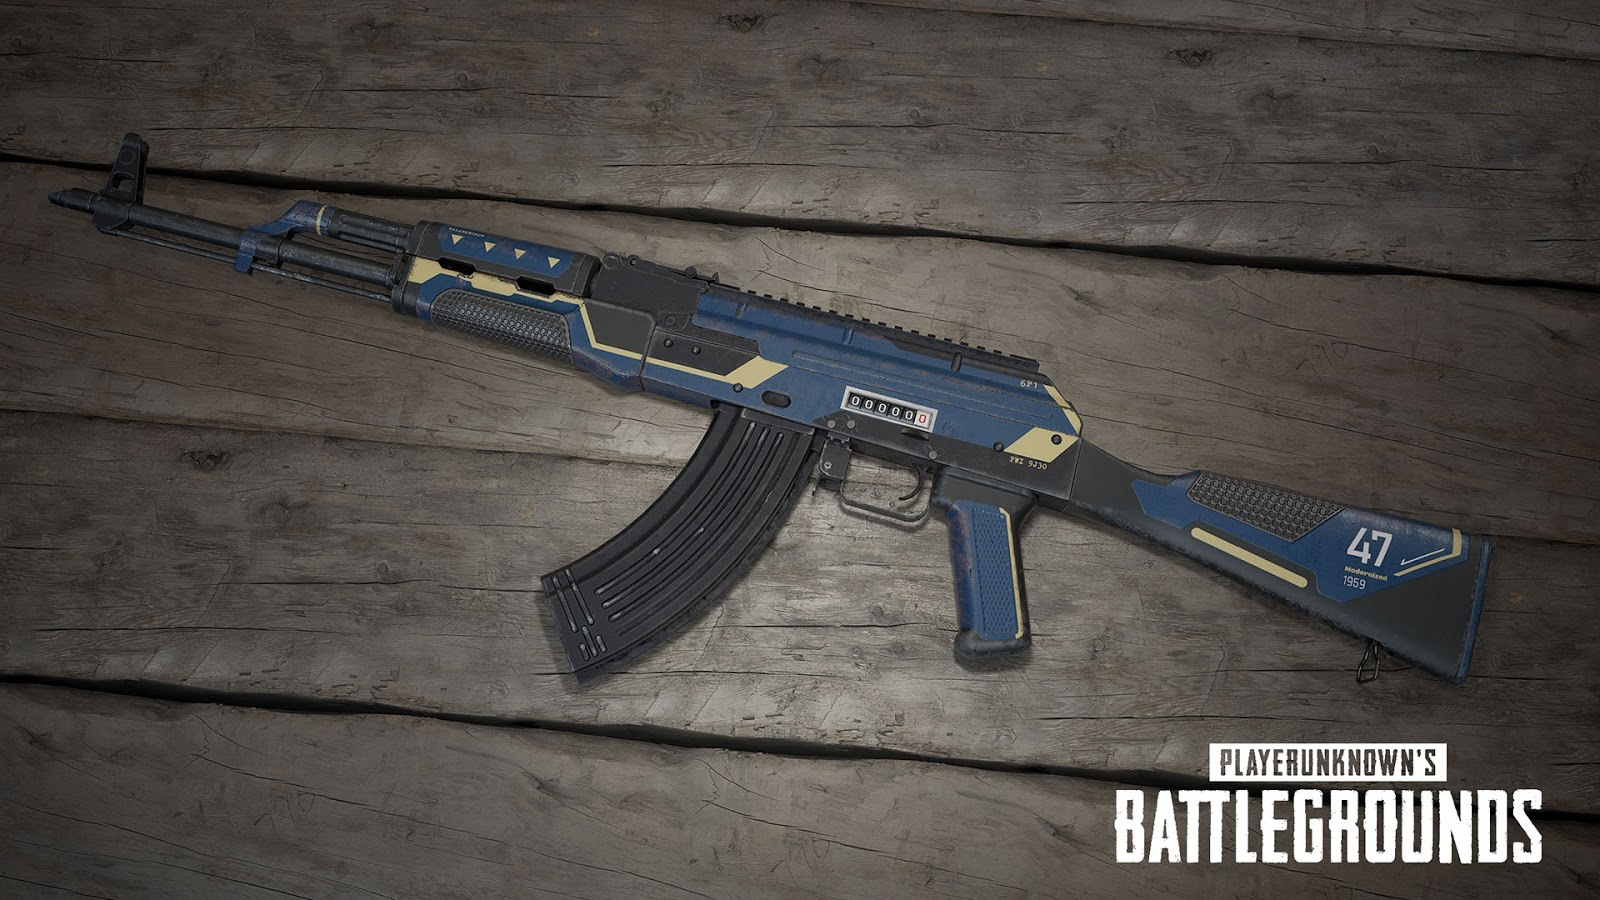 Pubg Gun Skin Wallpaper Pubg Mobile Zip Free Download